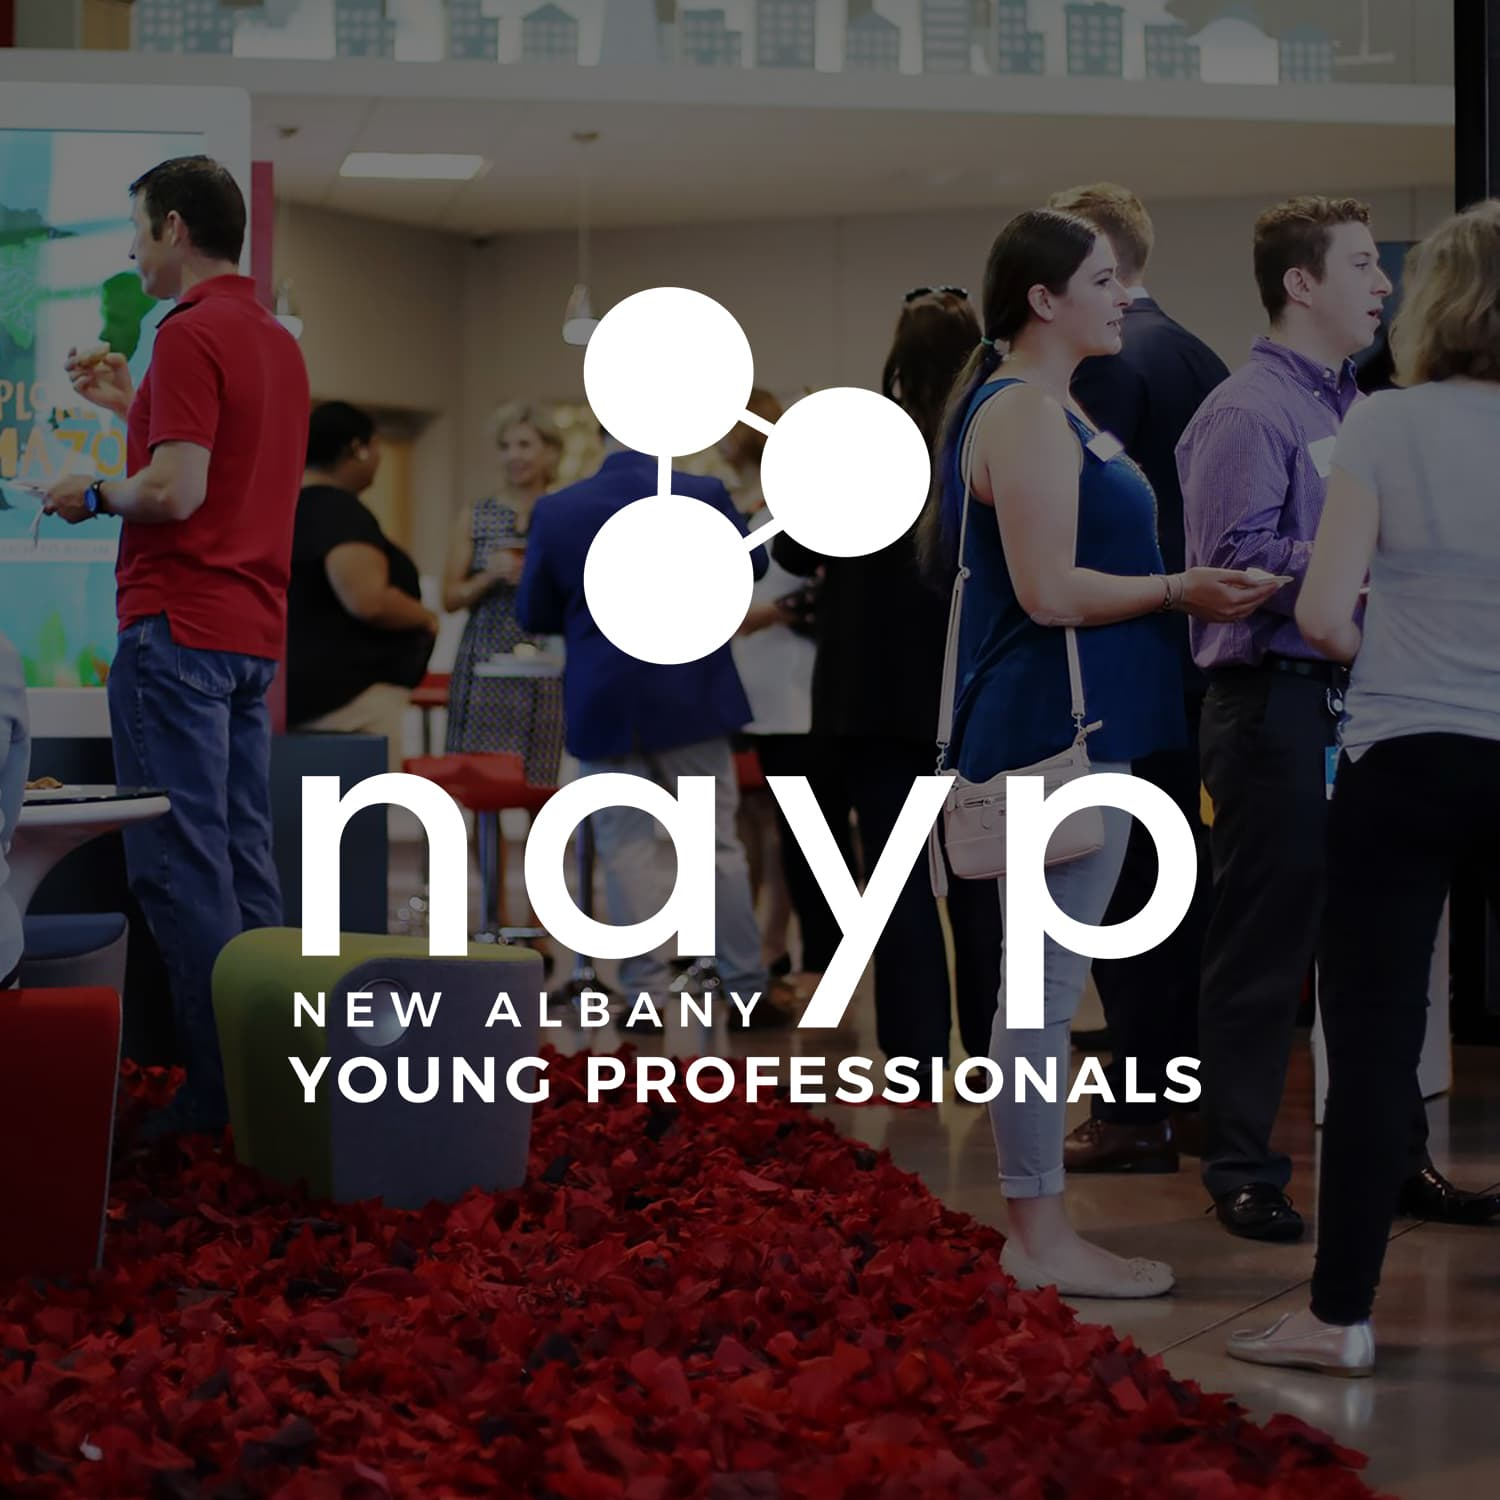 NAYP Logo Display.jpg